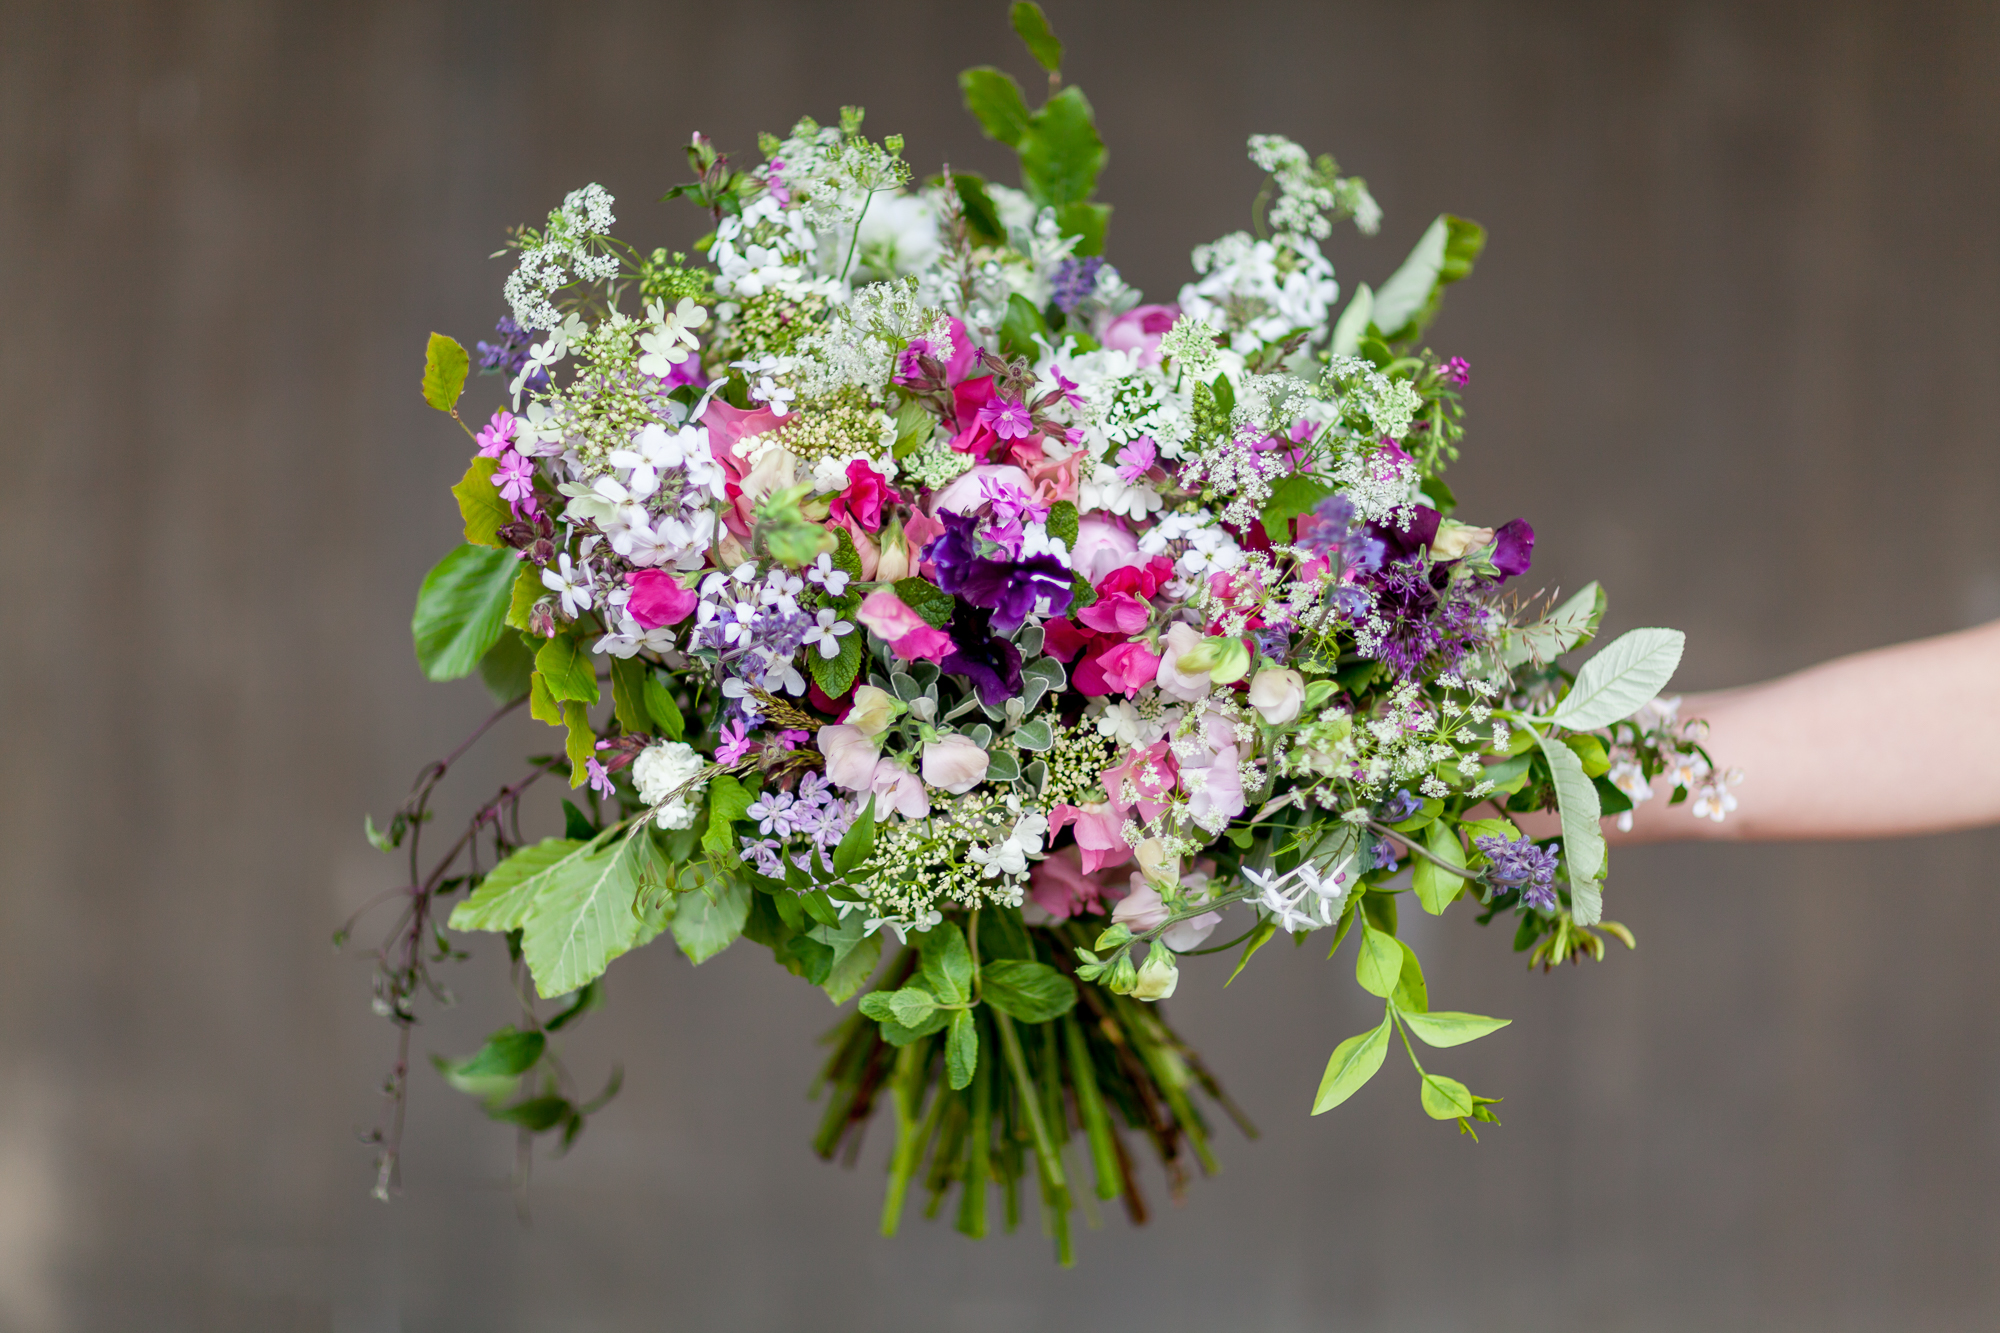 Day 4 of British Flowers Week 2016, featuring a Bouquet designed by Anna and Ellie of The Flower Appreciation Society, presented to you by New Covent Garden Flower Market